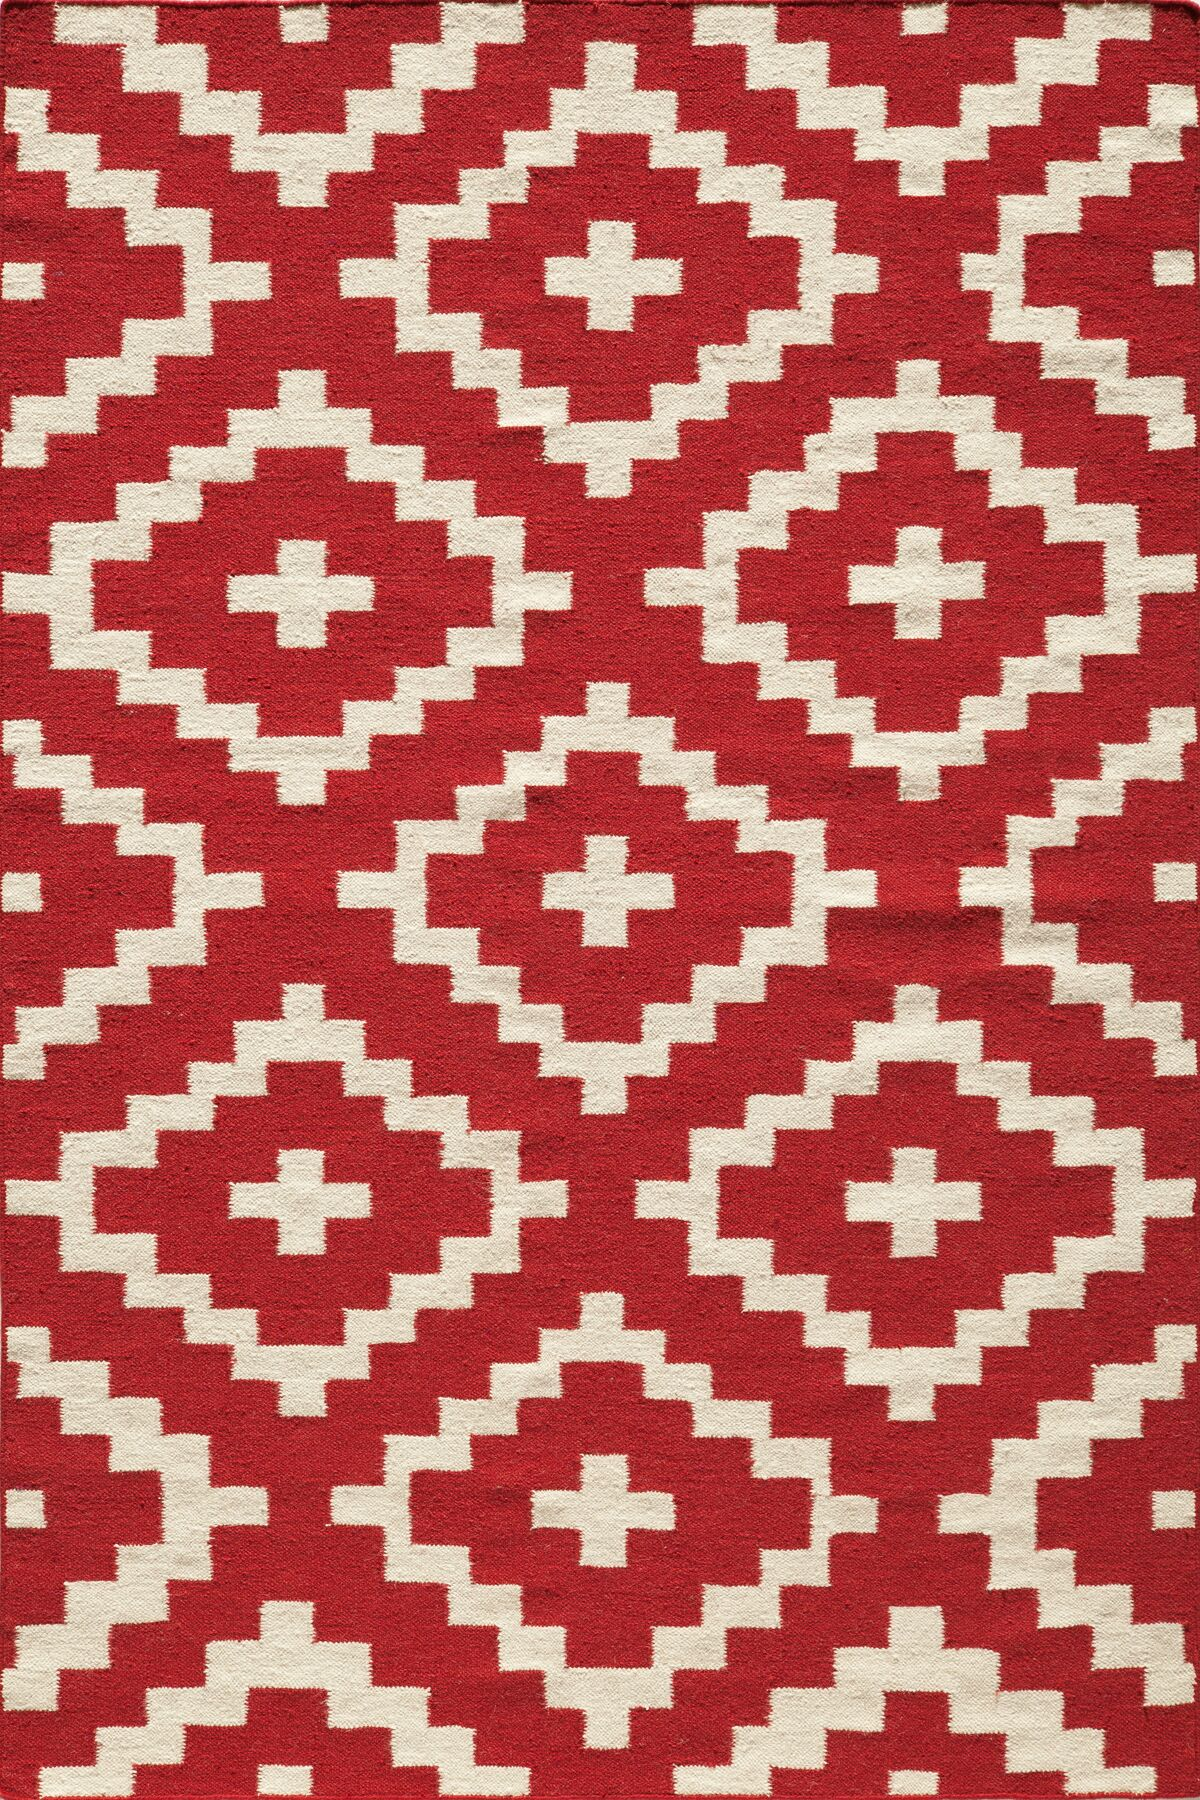 Hagler Hand-Woven Red Area Rug Rug Size: Rectangle 5' x 8'